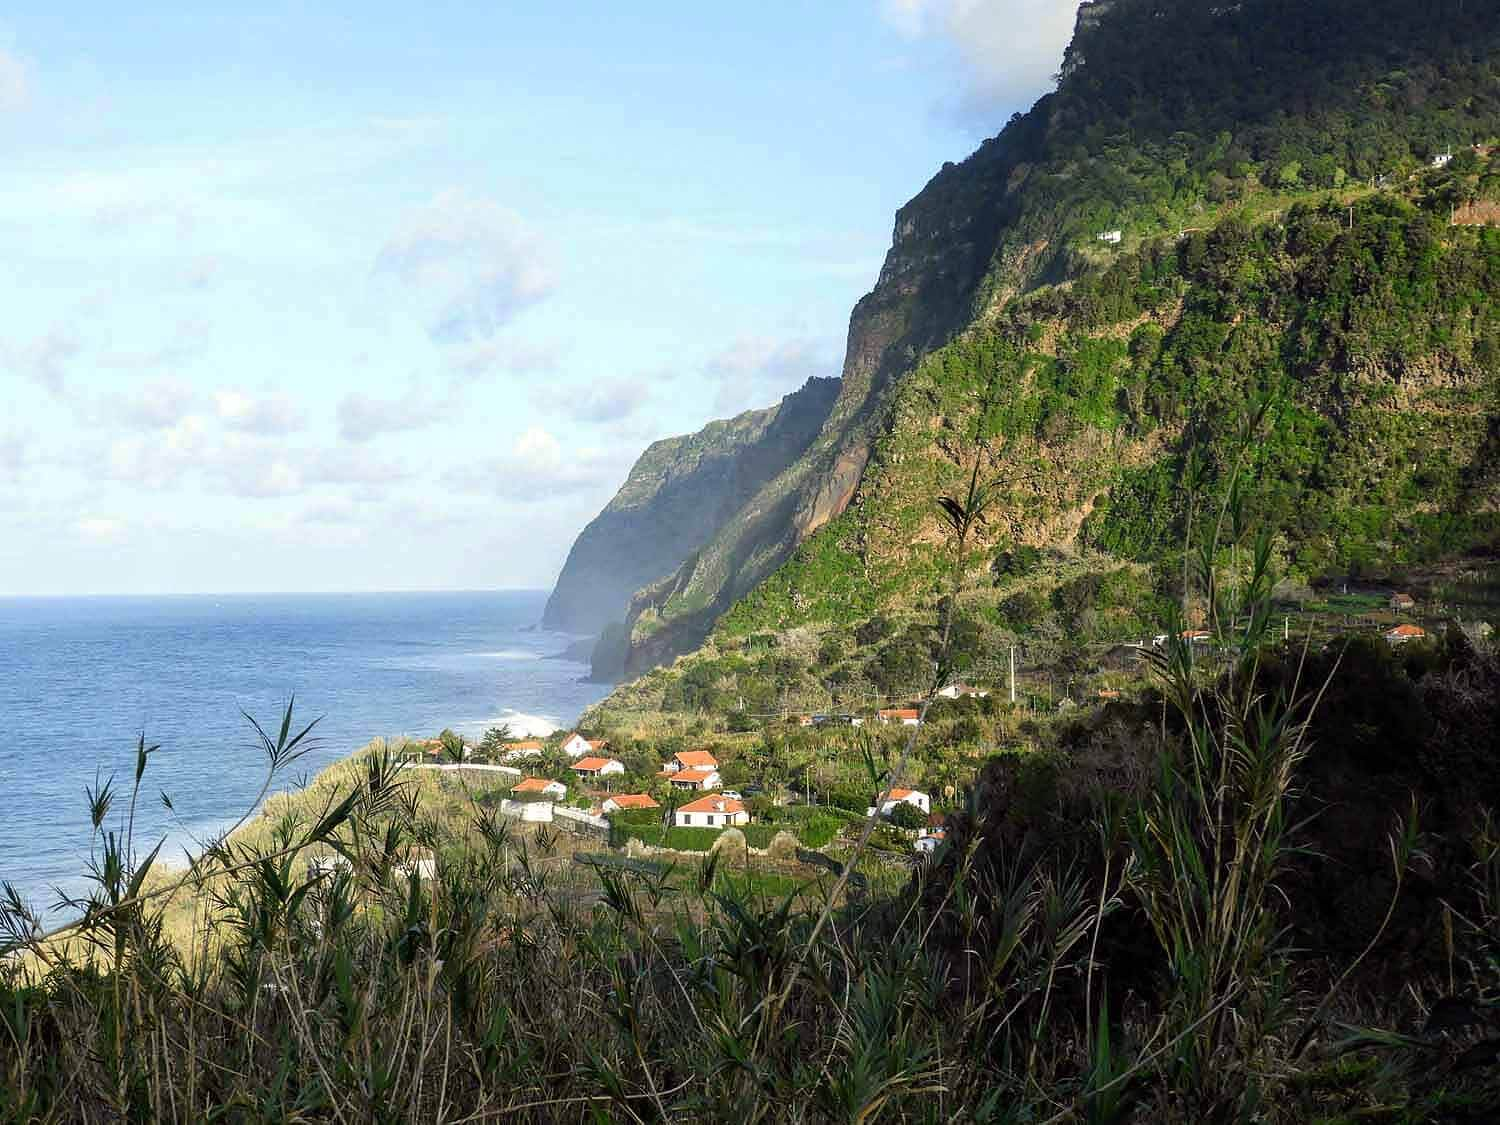 portugal-madeira-island-arco-sao-jorge-town-north-side-village-morning-view.jpg